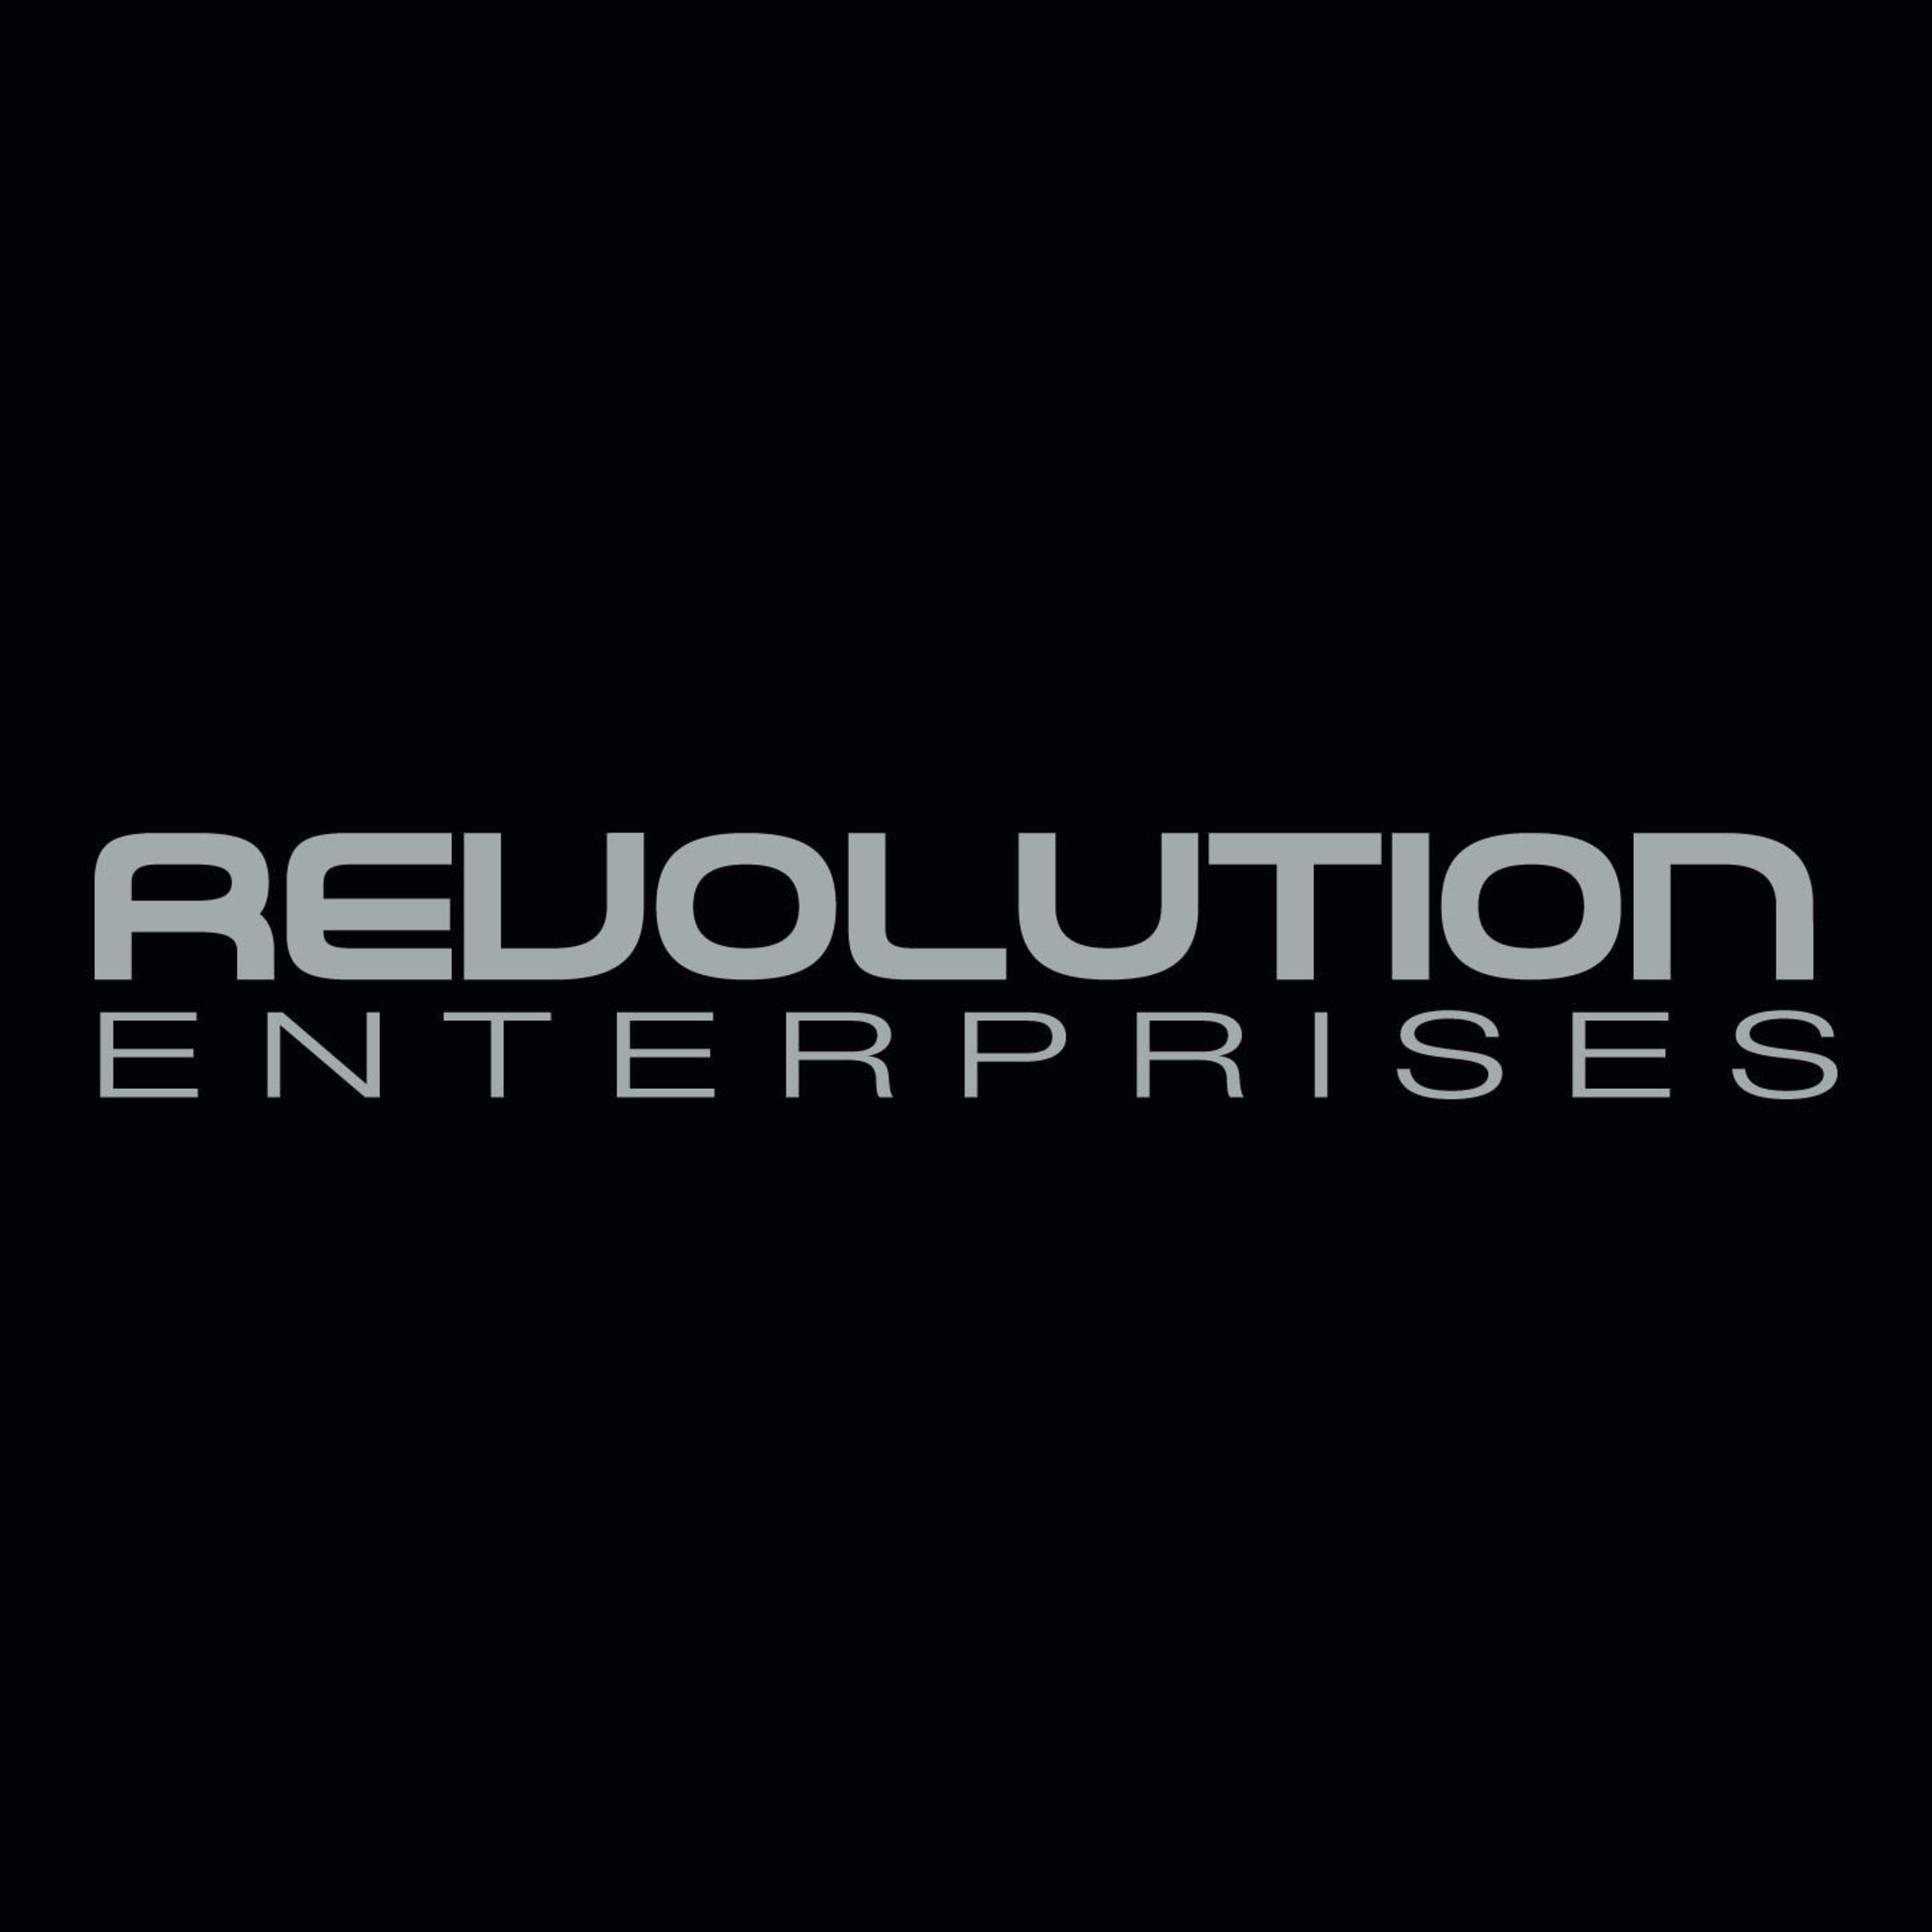 Revolution Enterprises manages technologically advanced cultivation, processing, and laboratory facilities devoted to making the world's best medicines derived from cannabis.